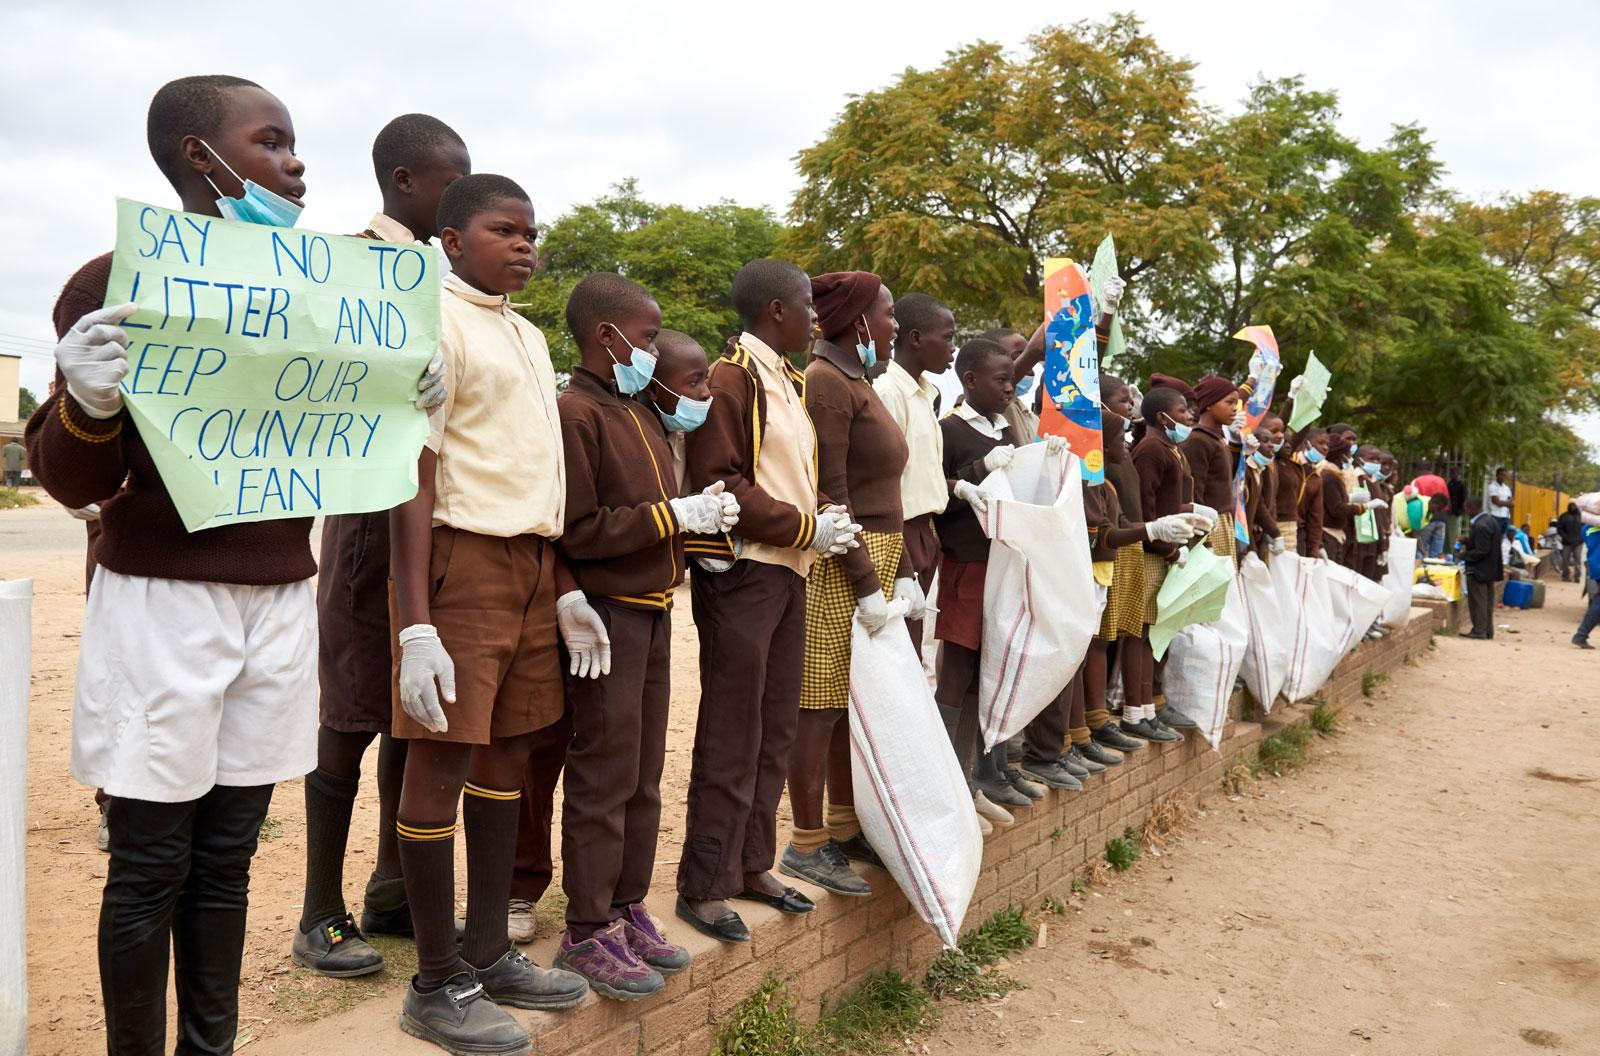 Children demonstrating with signs